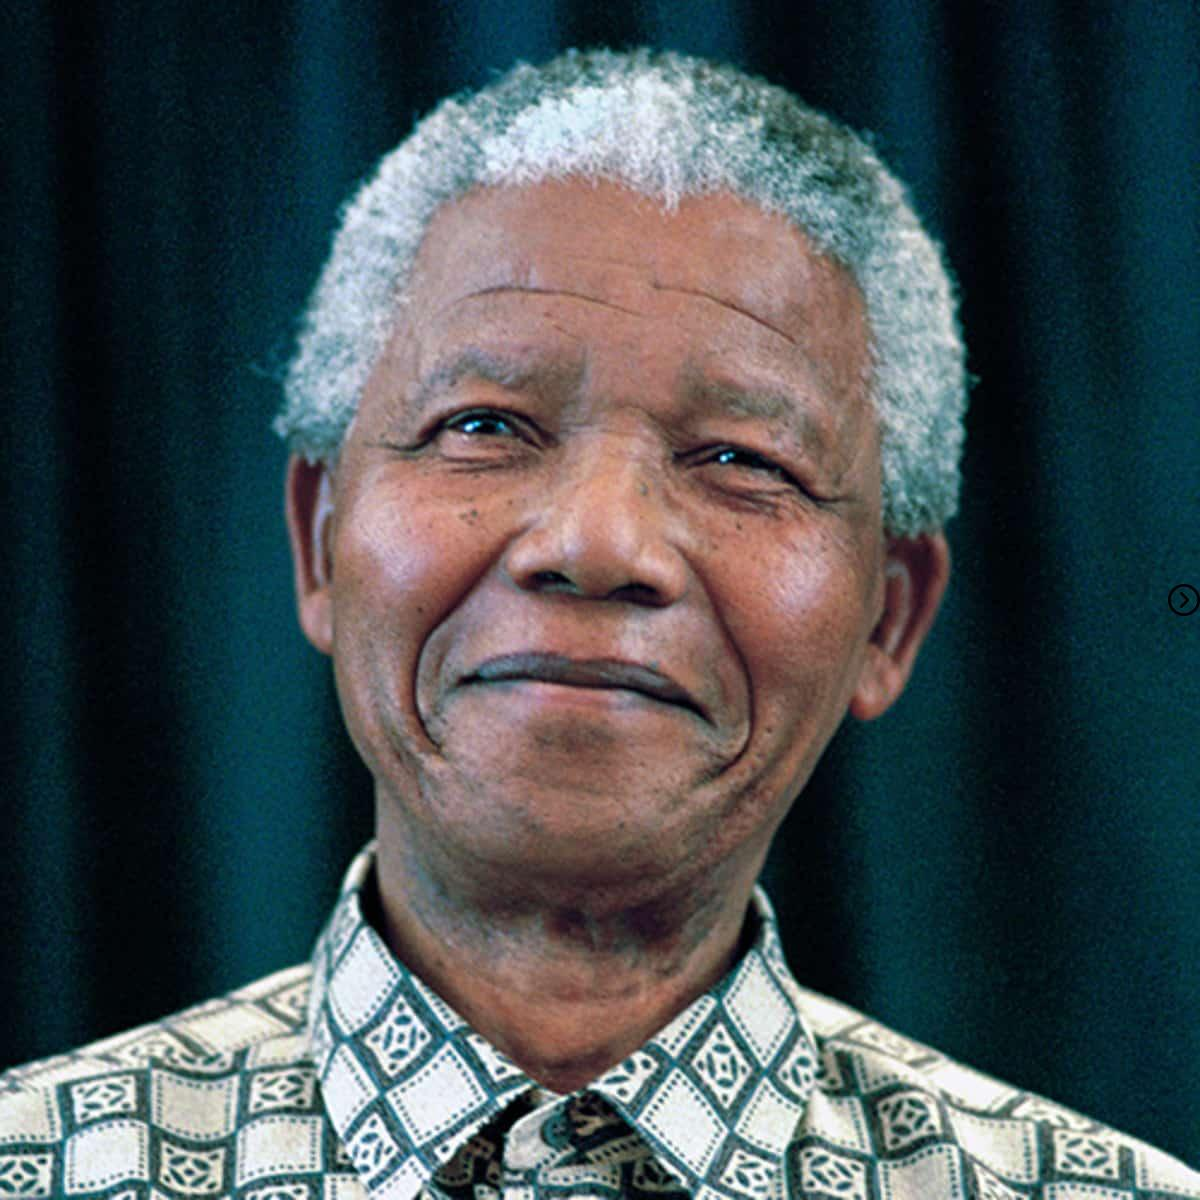 In which island Nelson mandela spent 18 years in Jail 2